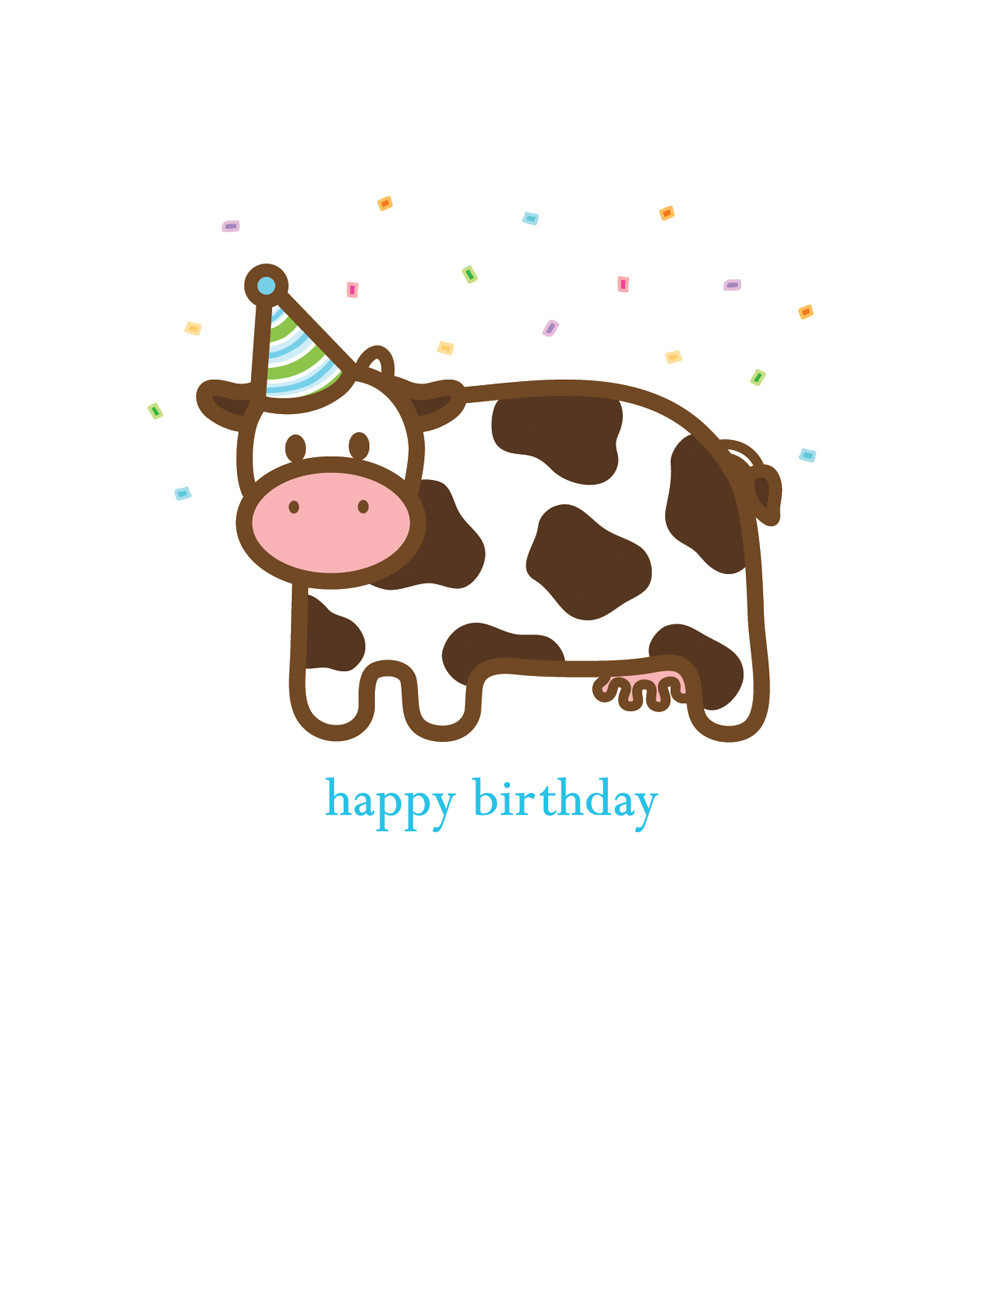 free printable cow birthday invitations ; Sample-Cow-Happy-Birthday-Card-Invitation-and-White-Background-Colors-plus-Blue-Font-Color-for-Kids-Celebrate